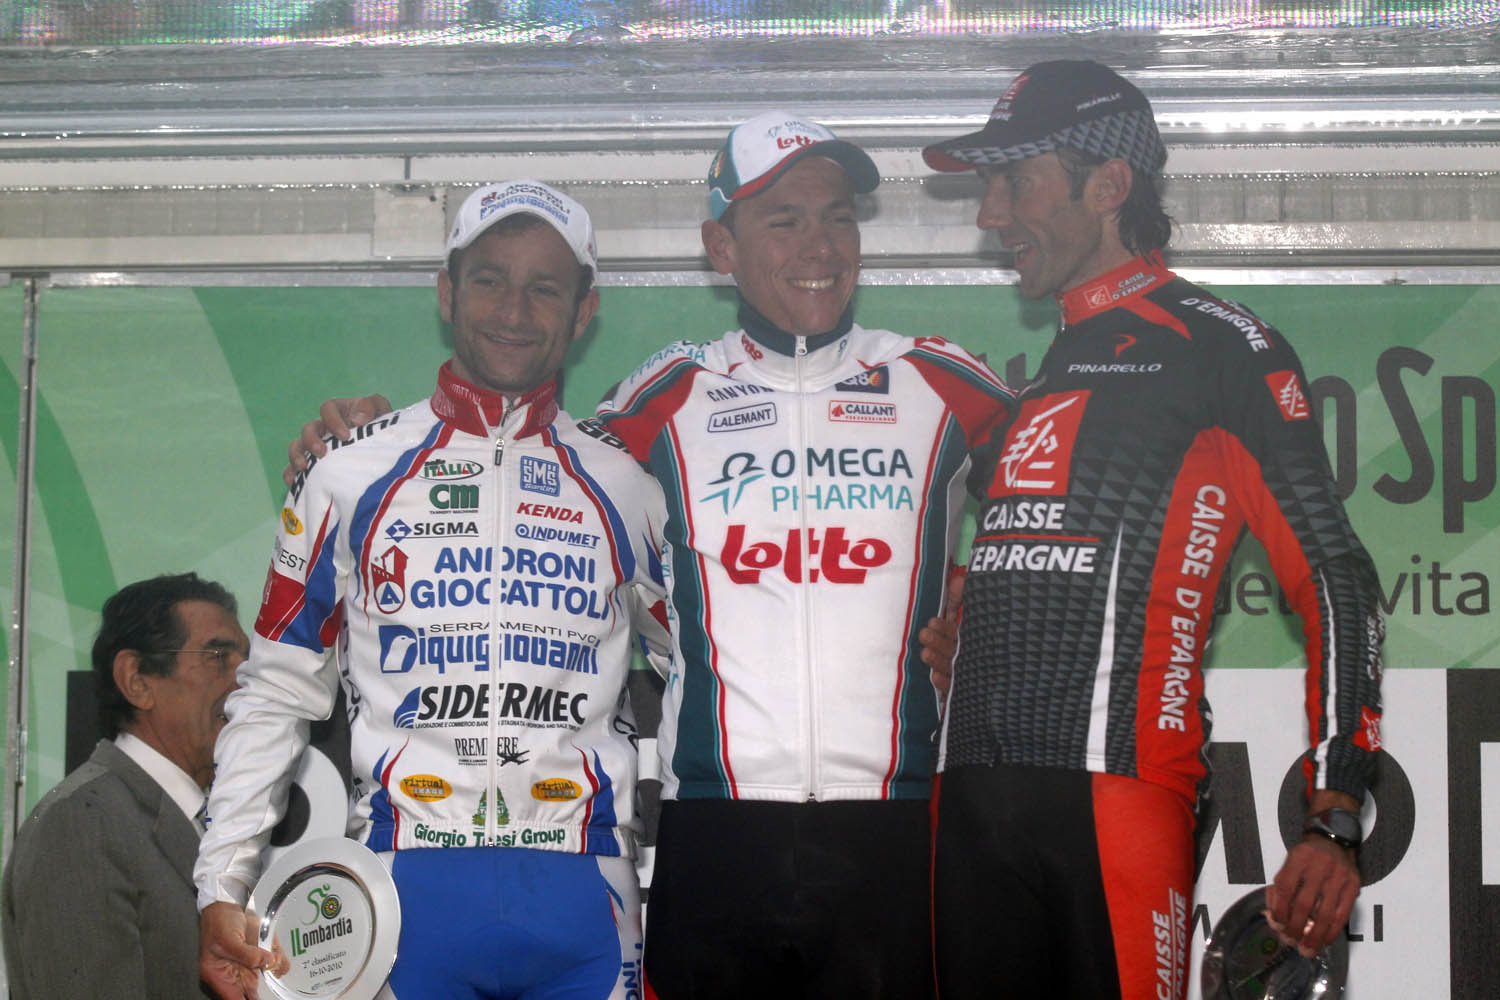 Scarponi, Gilbert and Lastras on the podium, Tour of Lombardy 2010